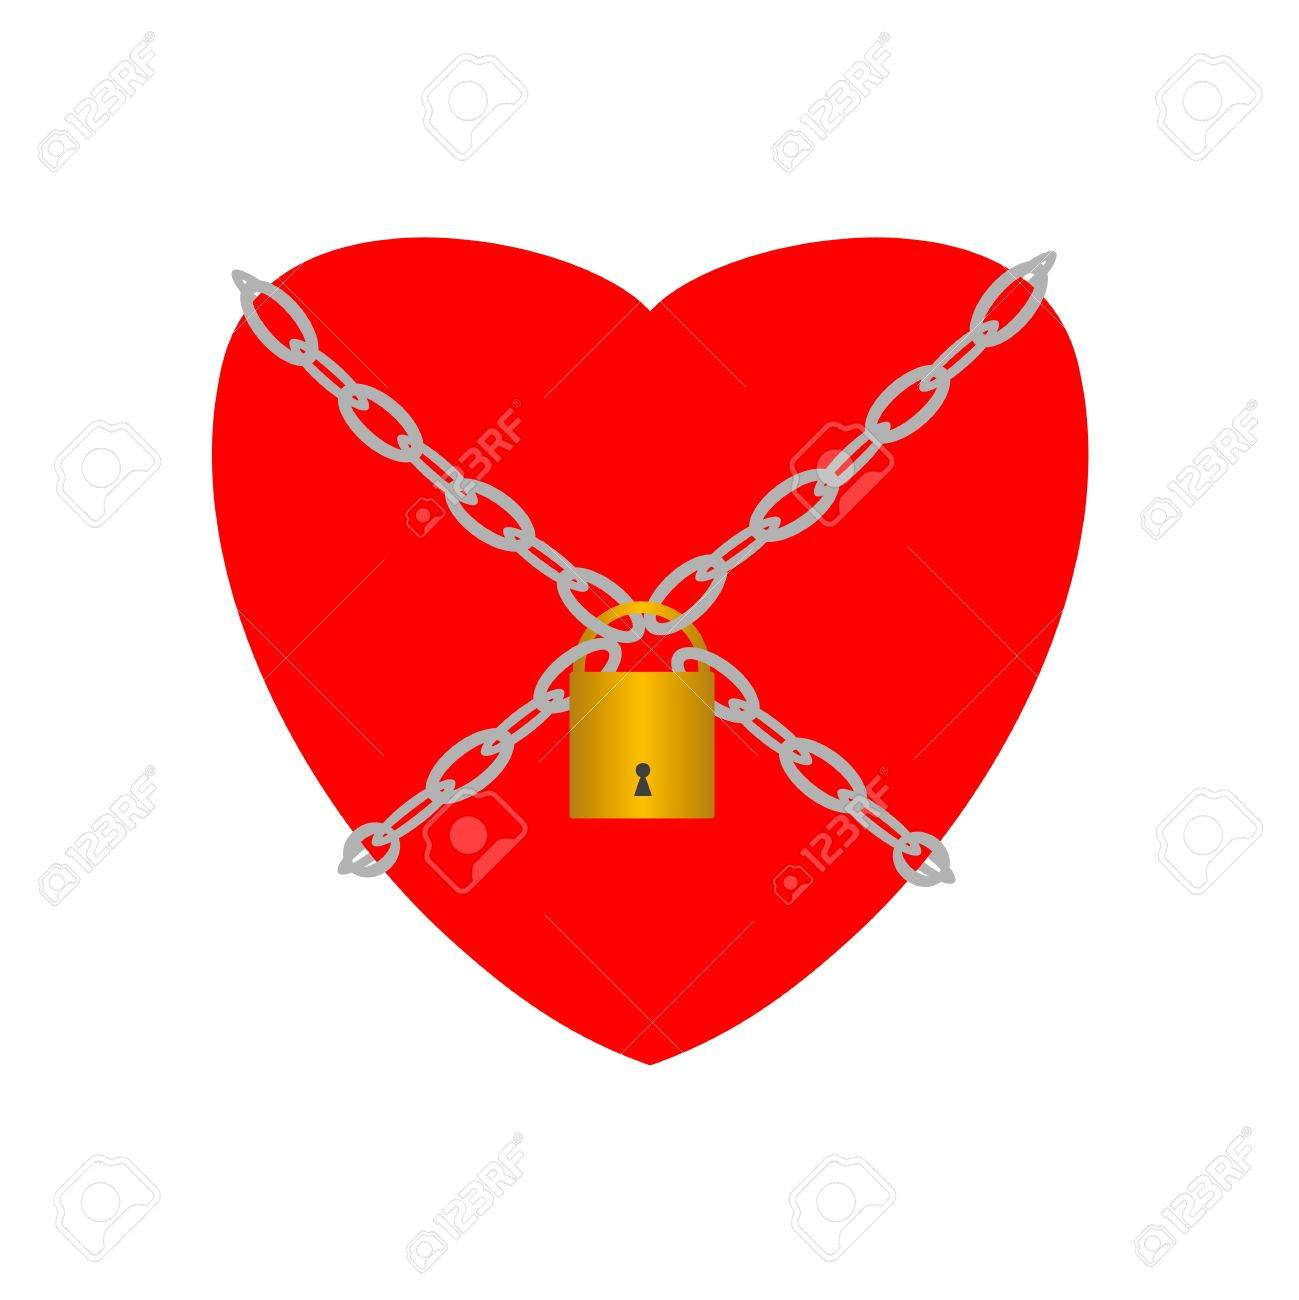 Heart closed with chains and padlock Stock Vector - 13820632